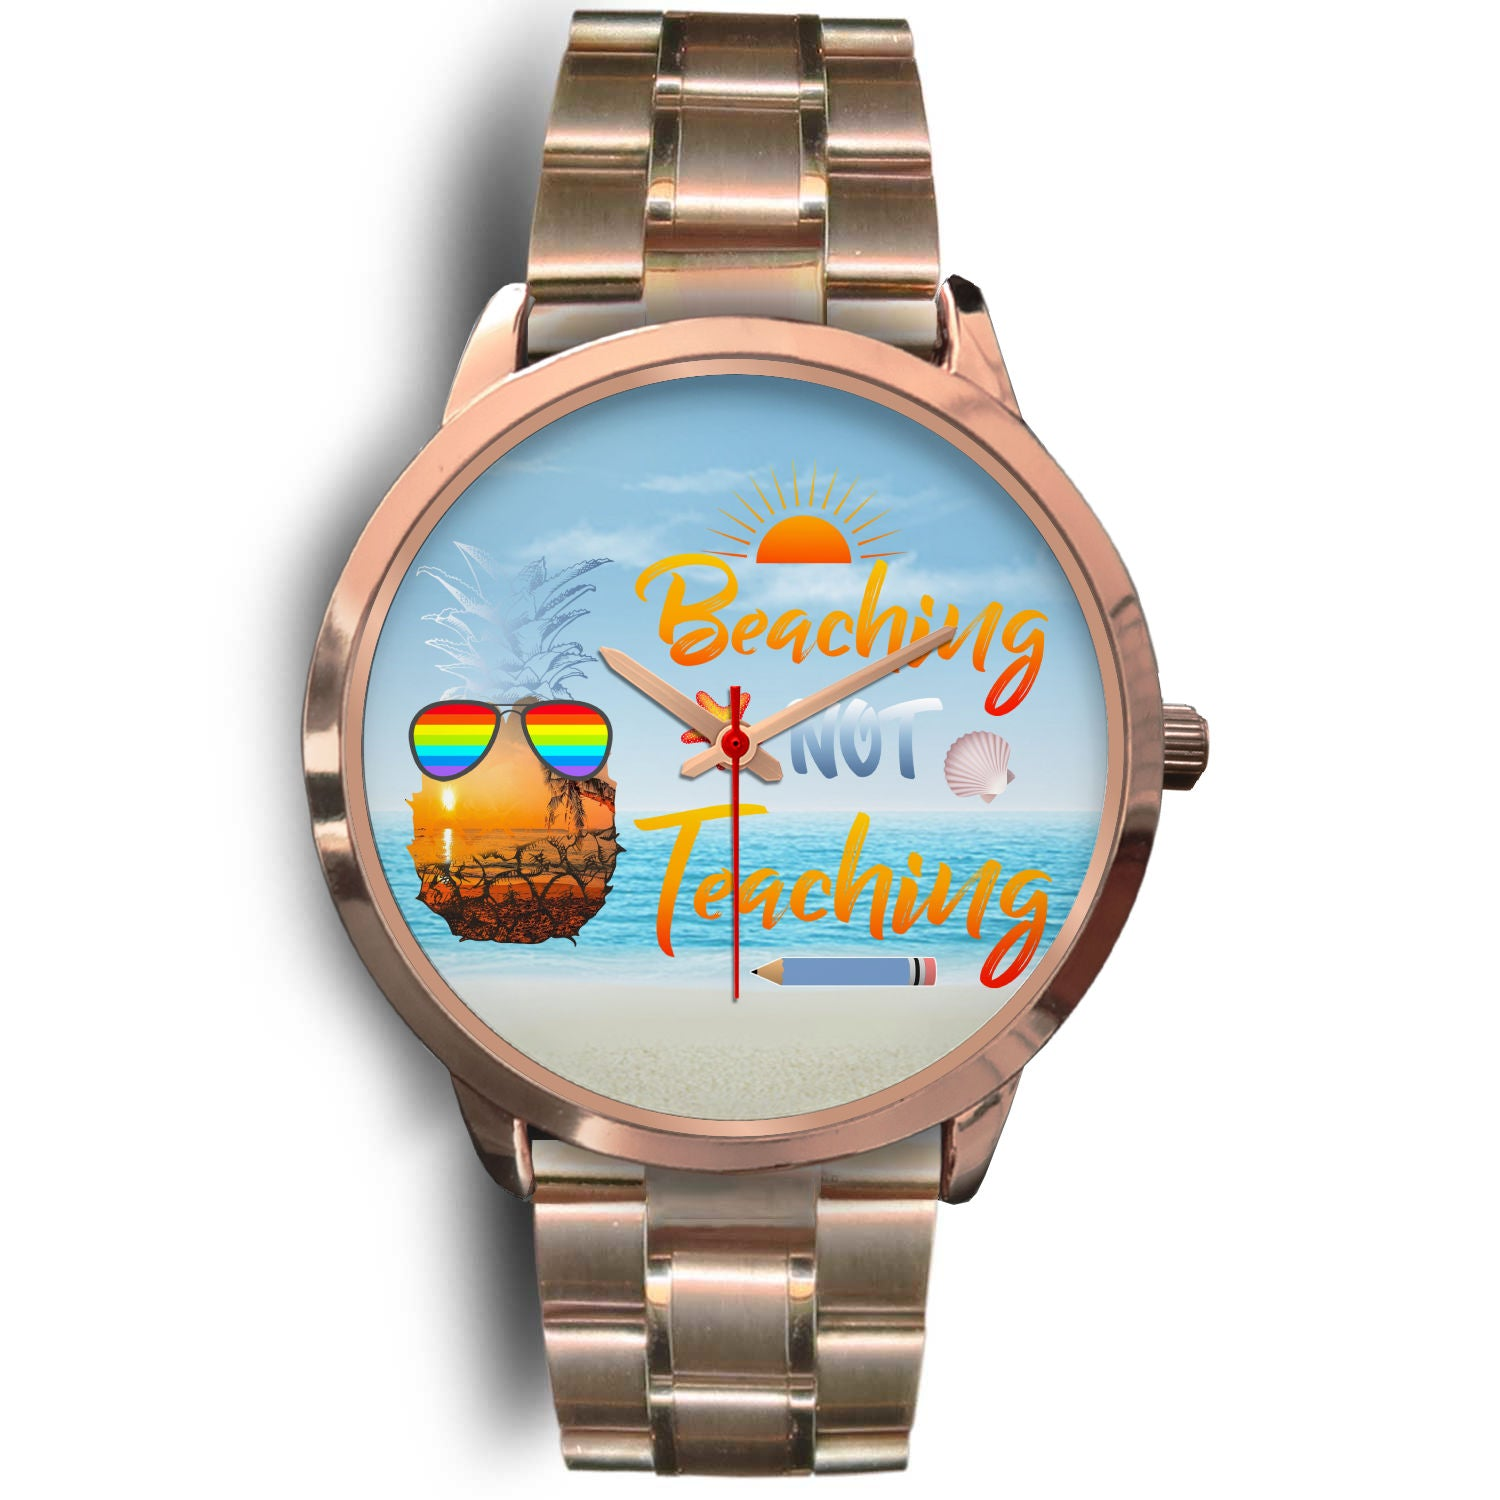 VIRA summer stainless steel watch for awesome teachers